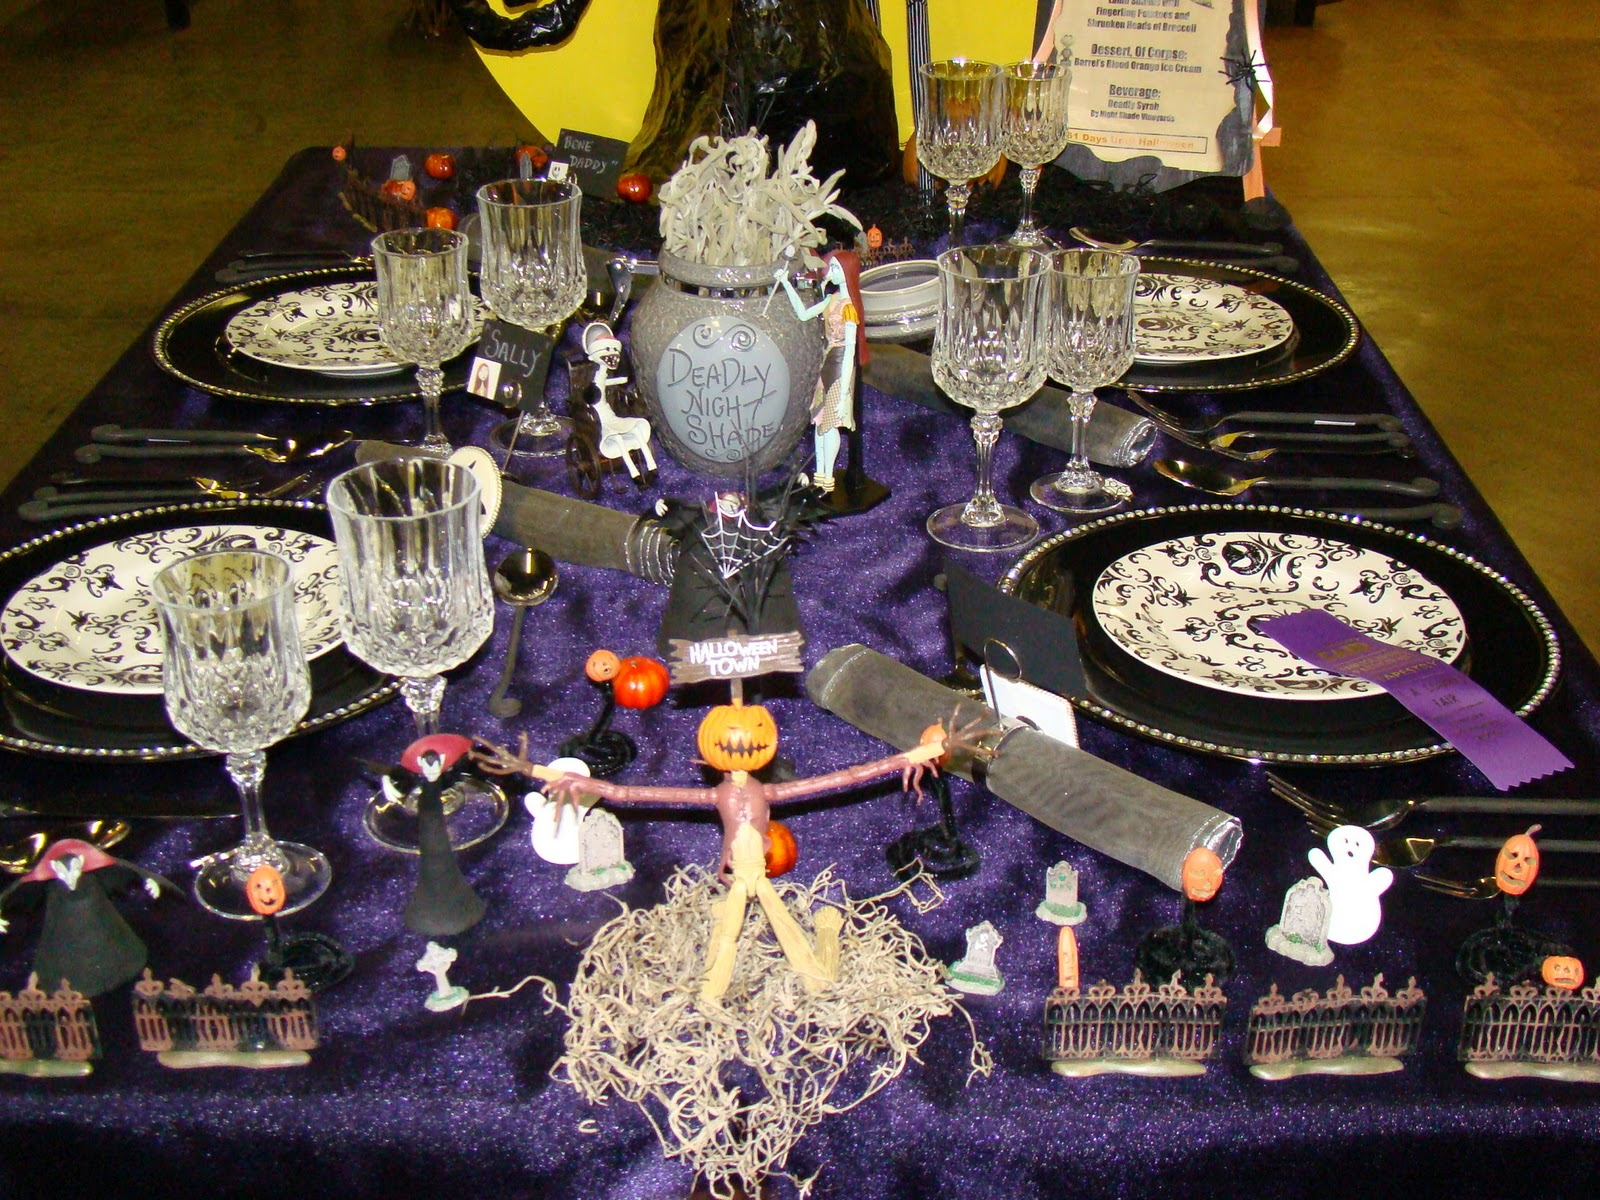 Halloween Tablescapes - Bubblegum and duct tape